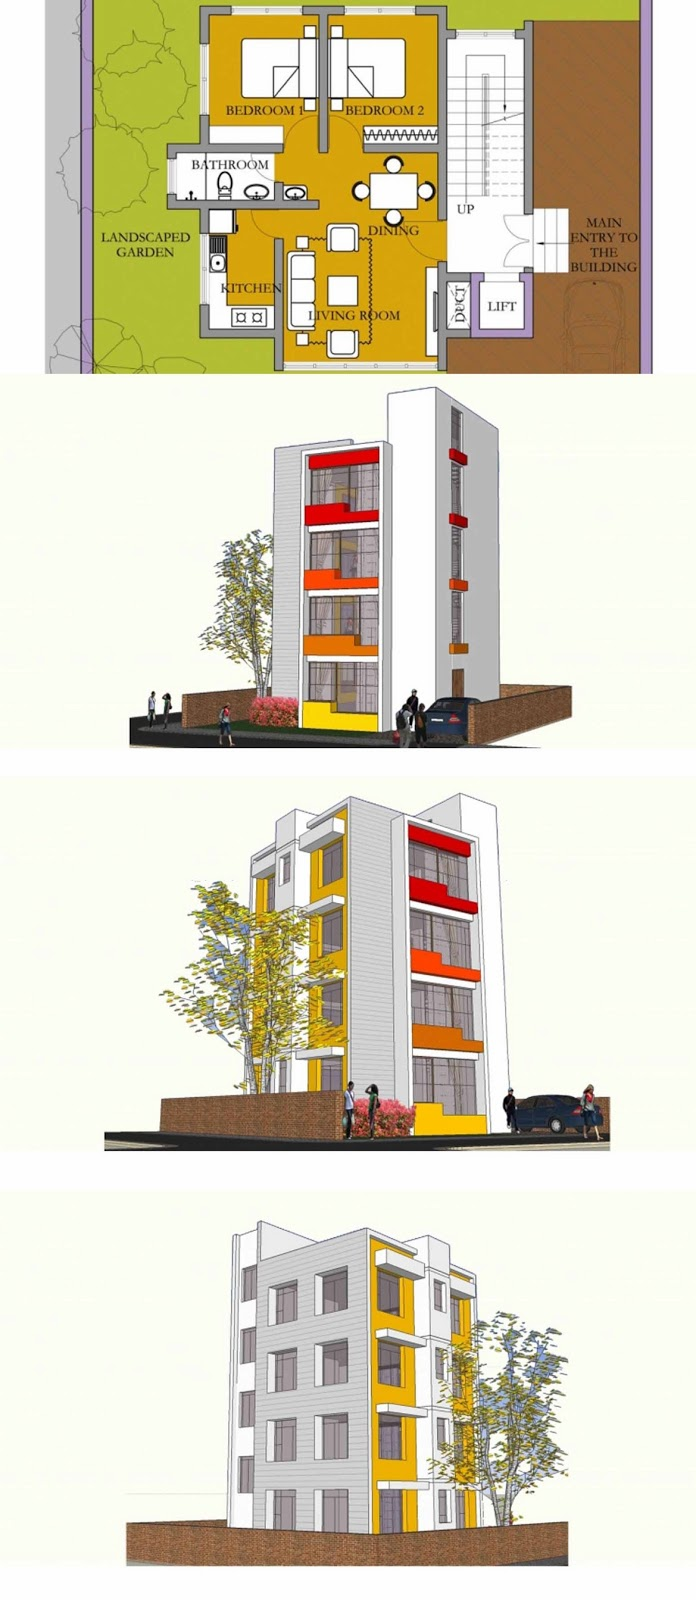 Home plans in india 2013 for Apartment design standards india